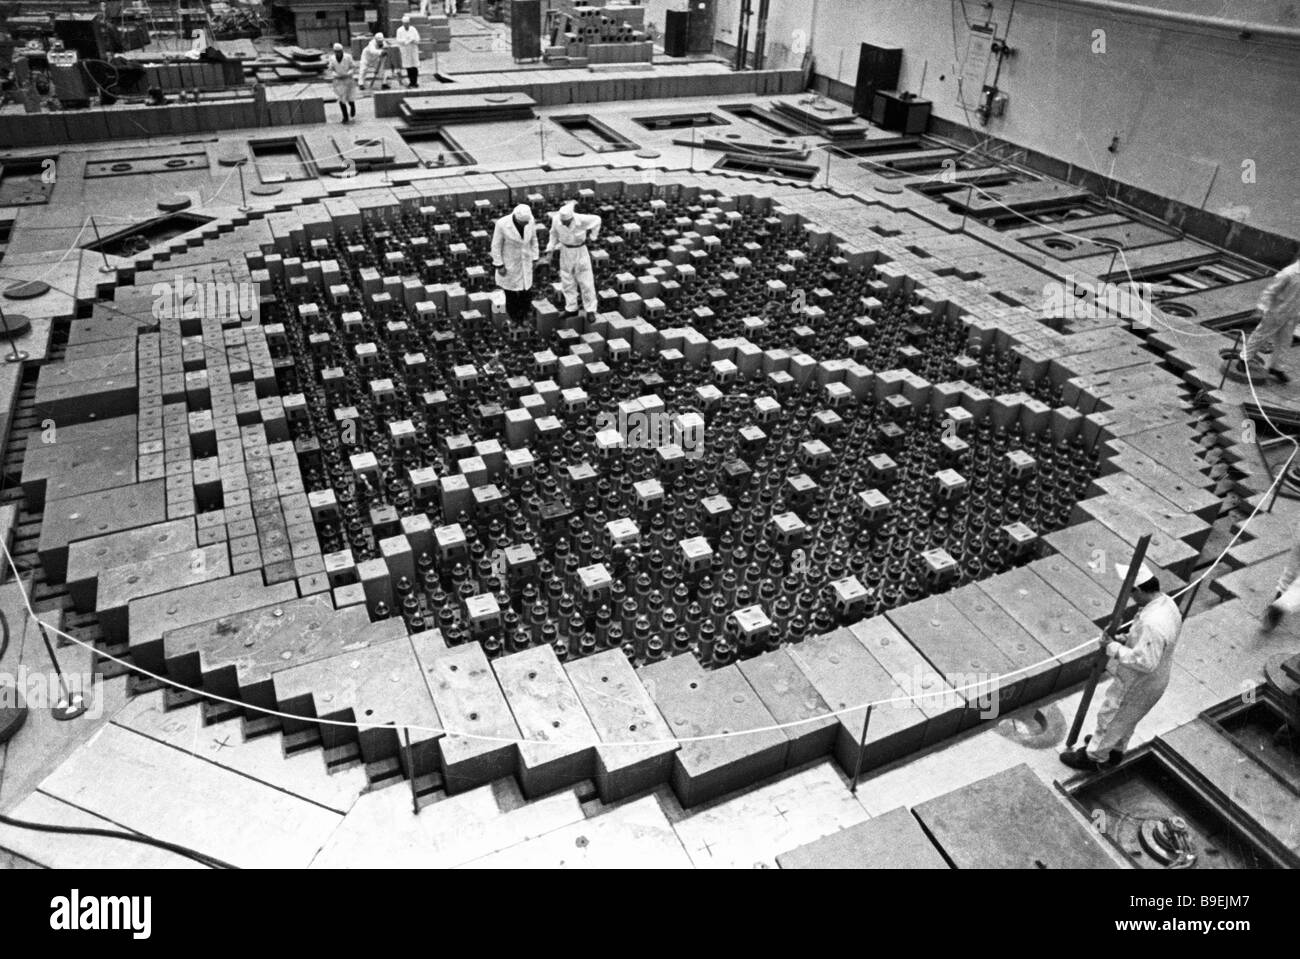 Nuclear Reactor Power Plant Black and White Stock Photos